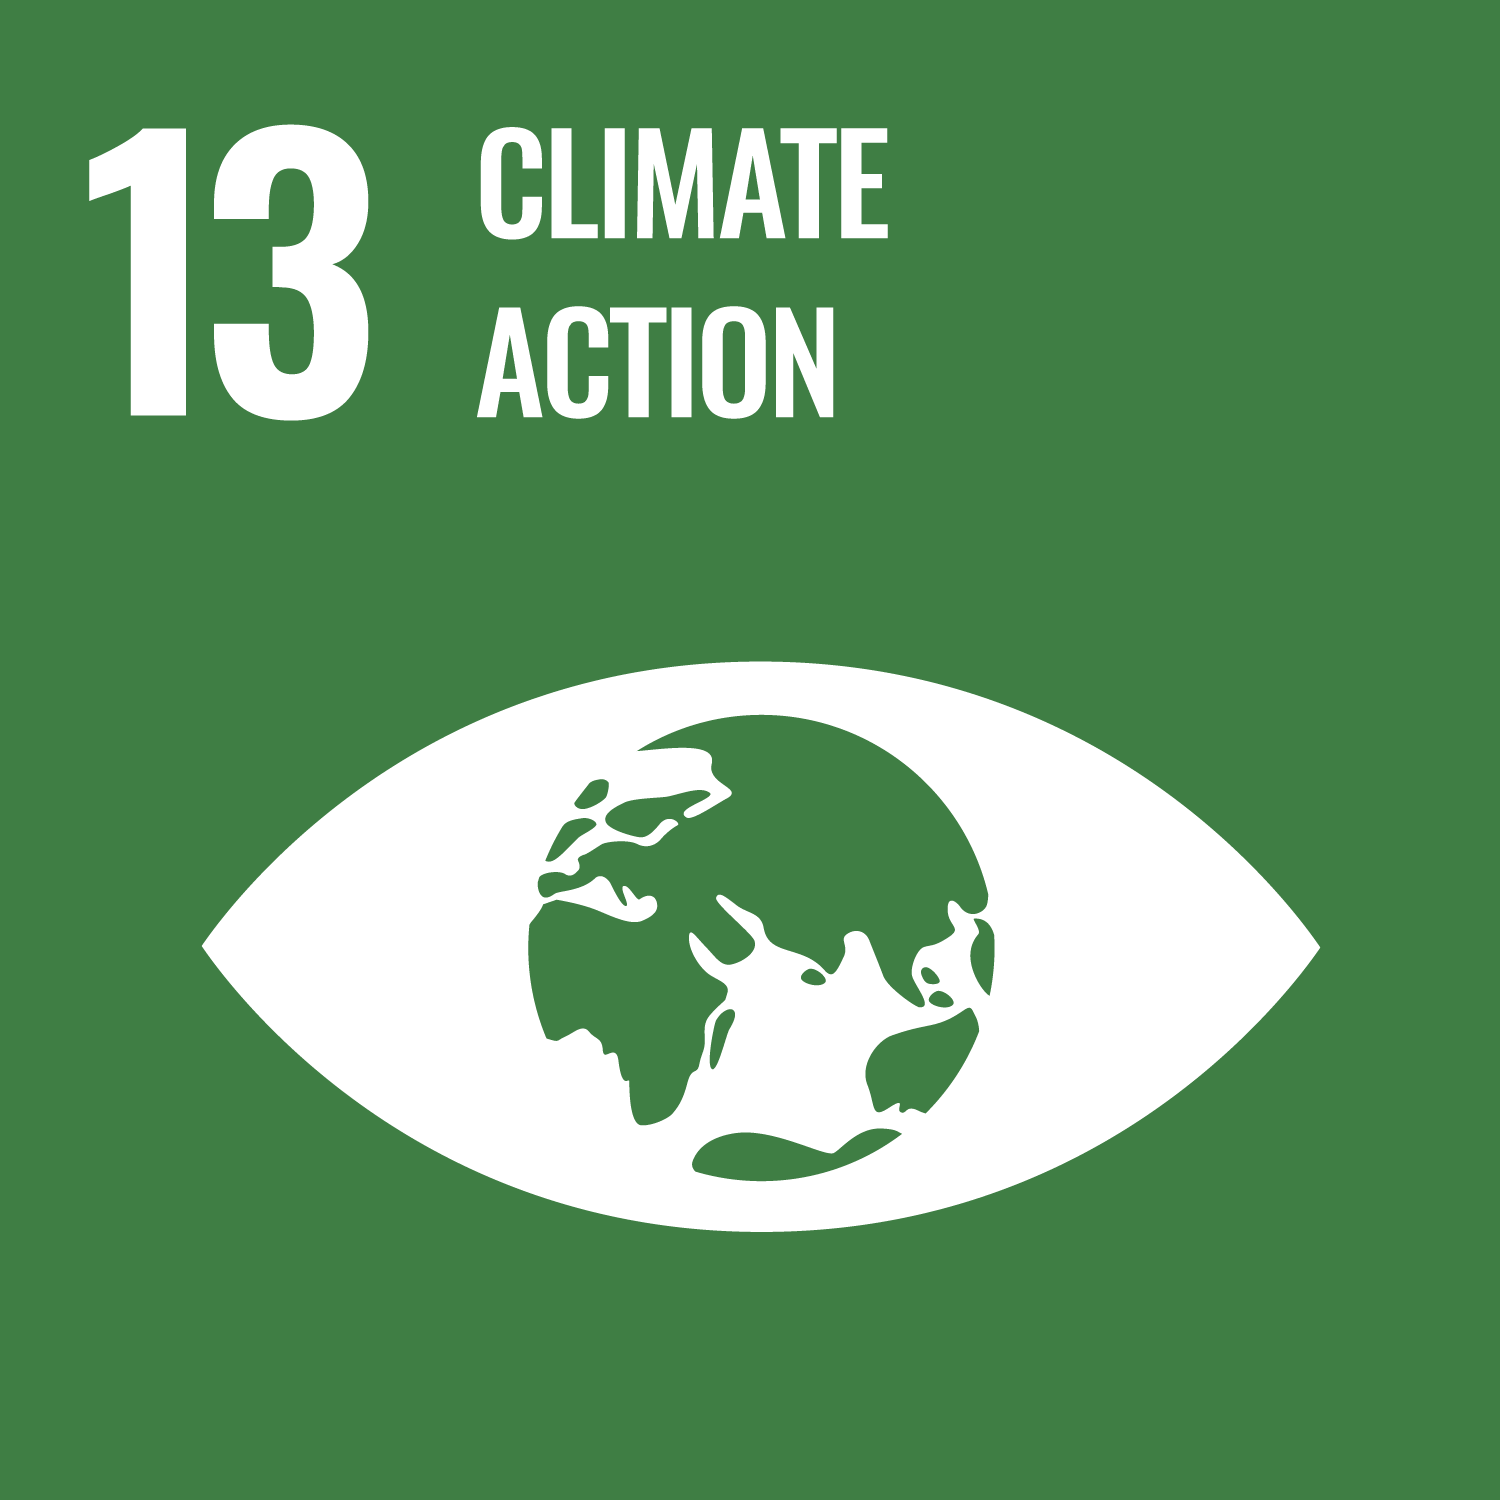 Sustainable Development Goal 13. Take urgent action to combat climate change and its impacts.